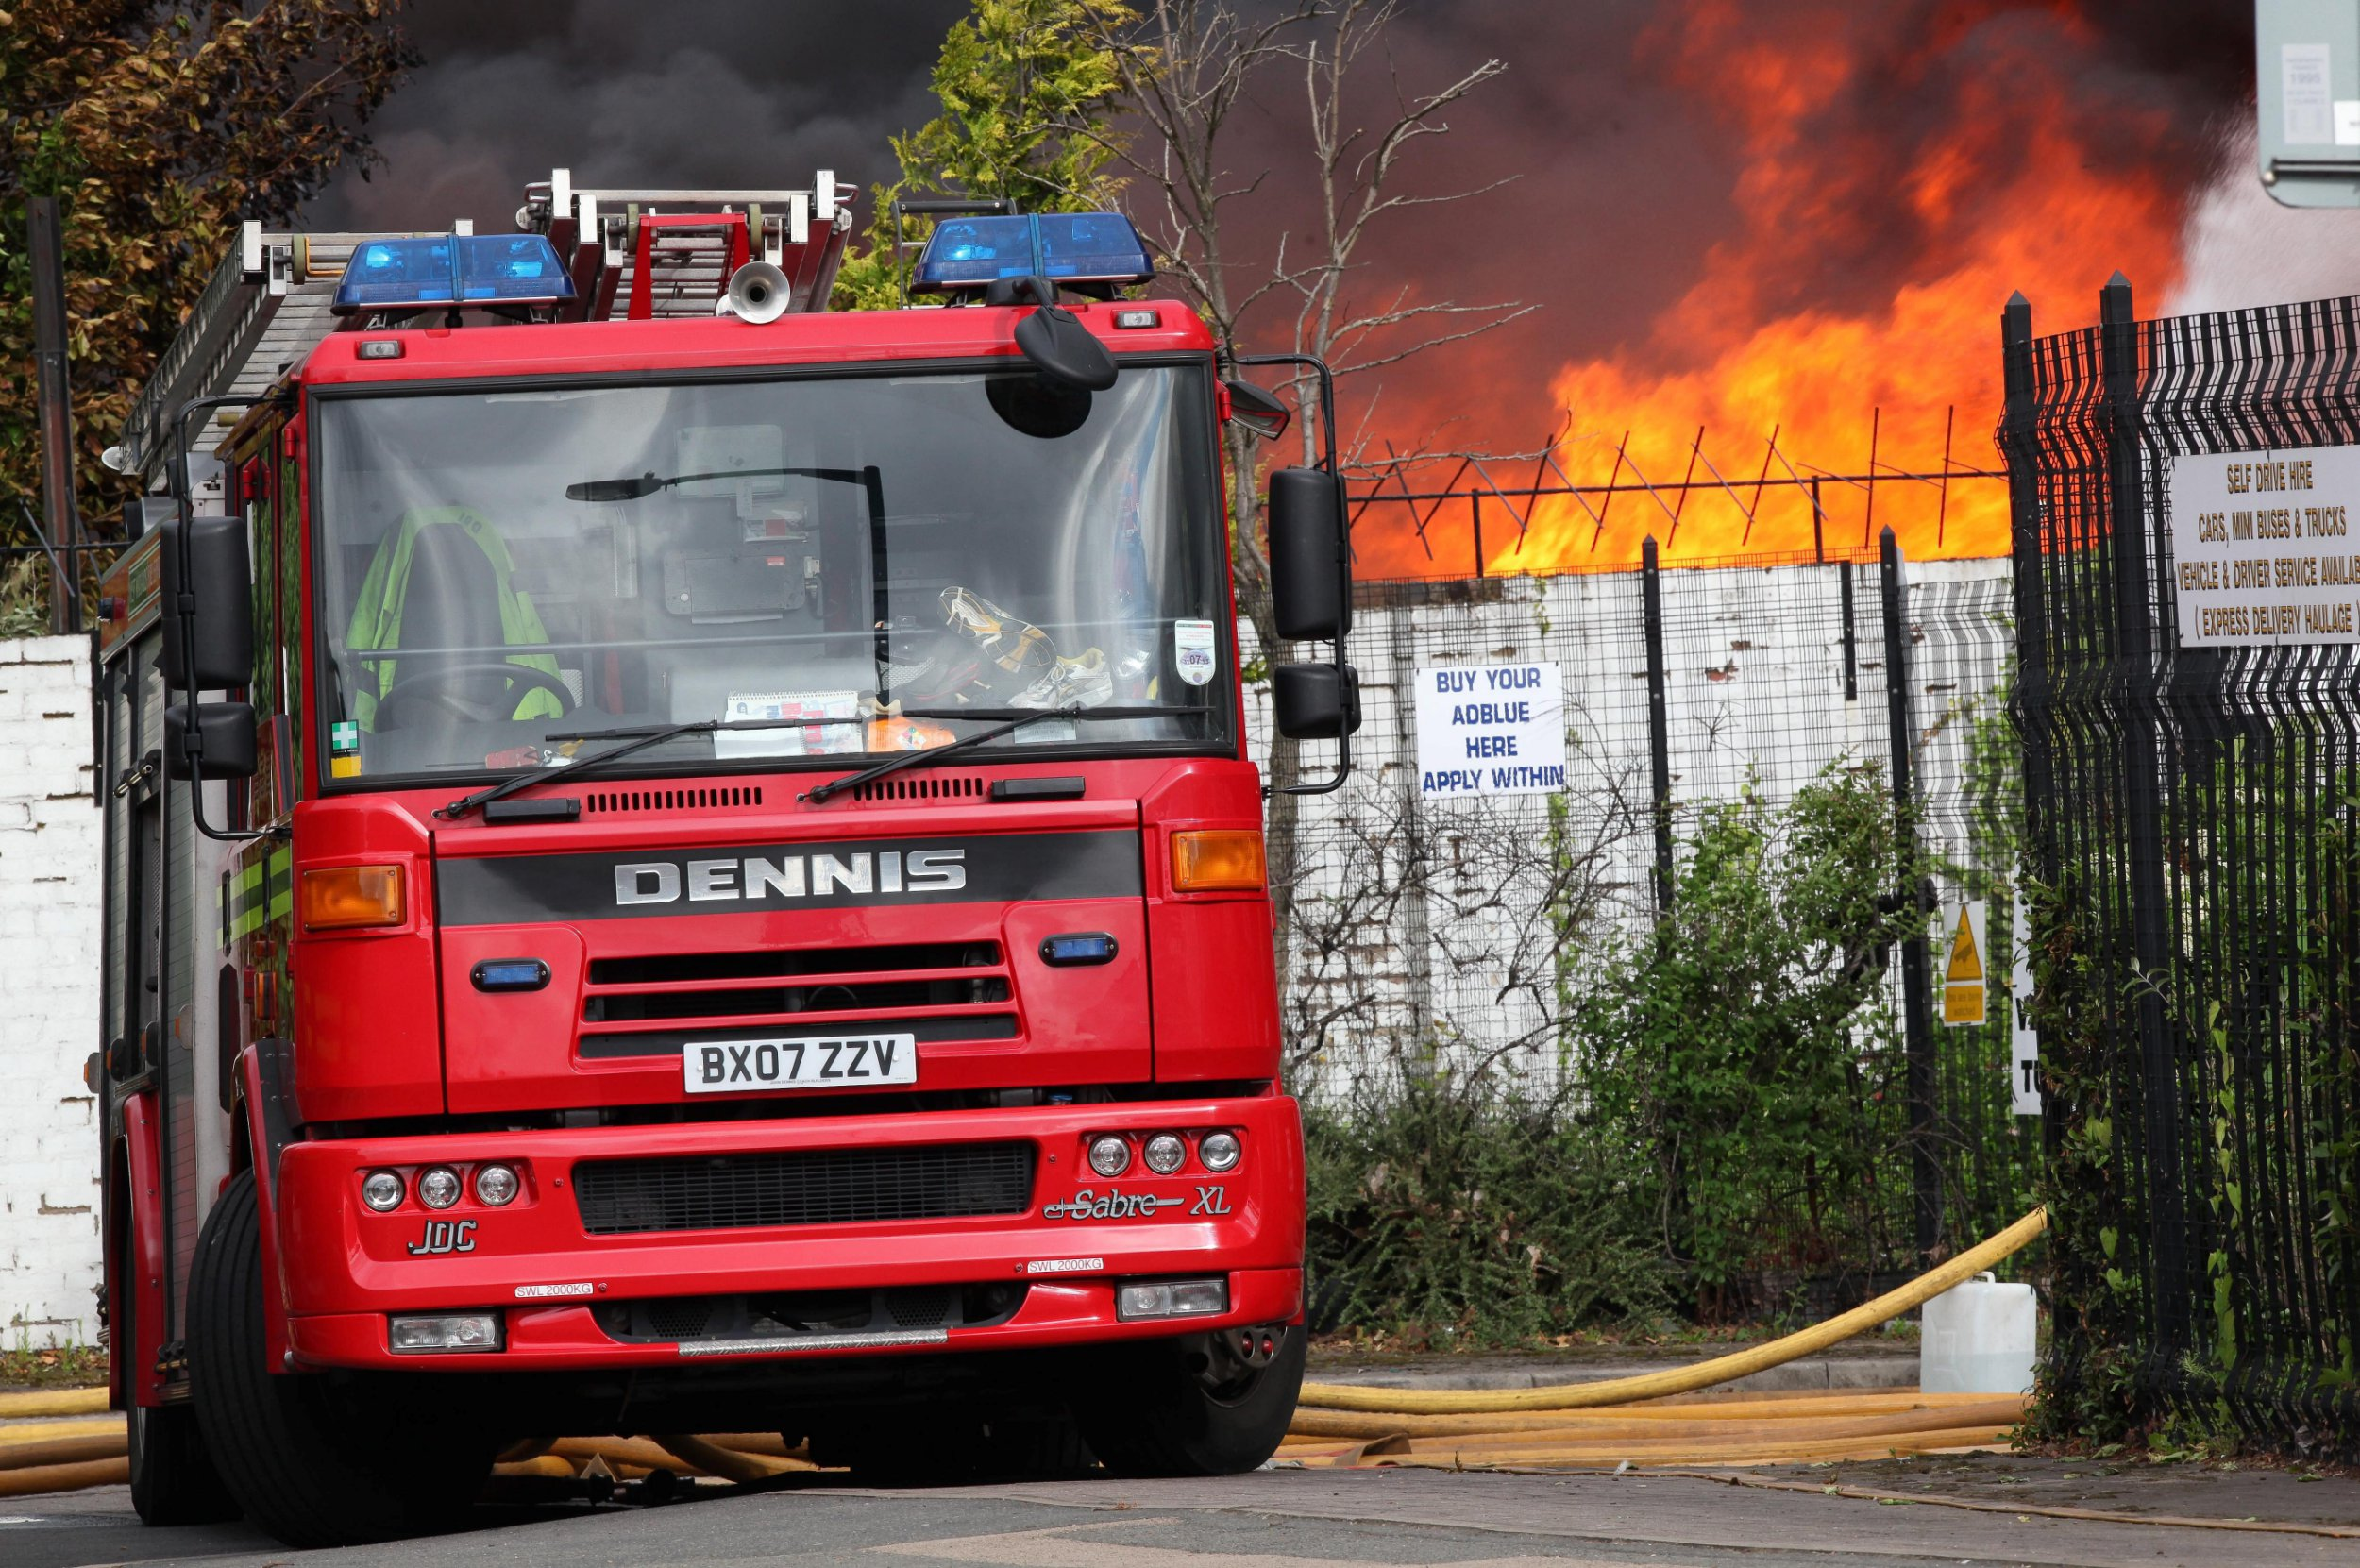 FILE PICTURE - Firefighters tackle a blaze involving 100,000 tonnes of plastic recycling material at a factory in Dartmouth Road, Smethwick, West Midlands. One of the county's biggest fire services has been accused of discrimination after it emerged white men have to score higher in its recruitment tests than anyone else. See SWNS story SWSYfire. West Midlands Fire and Rescue Service wants 60 per cent of new recruits to be women, and 35 per cent to be from black and minority ethnic groups by 2021. In a bid to reach the target, they have altered the pass rates to make it easier for people from those groups to get through the test. Women and men from black, Asian and minority ethnic groups only have to score 60 per cent on verbal and numerical tests - where as white men have to score 70 per cent.